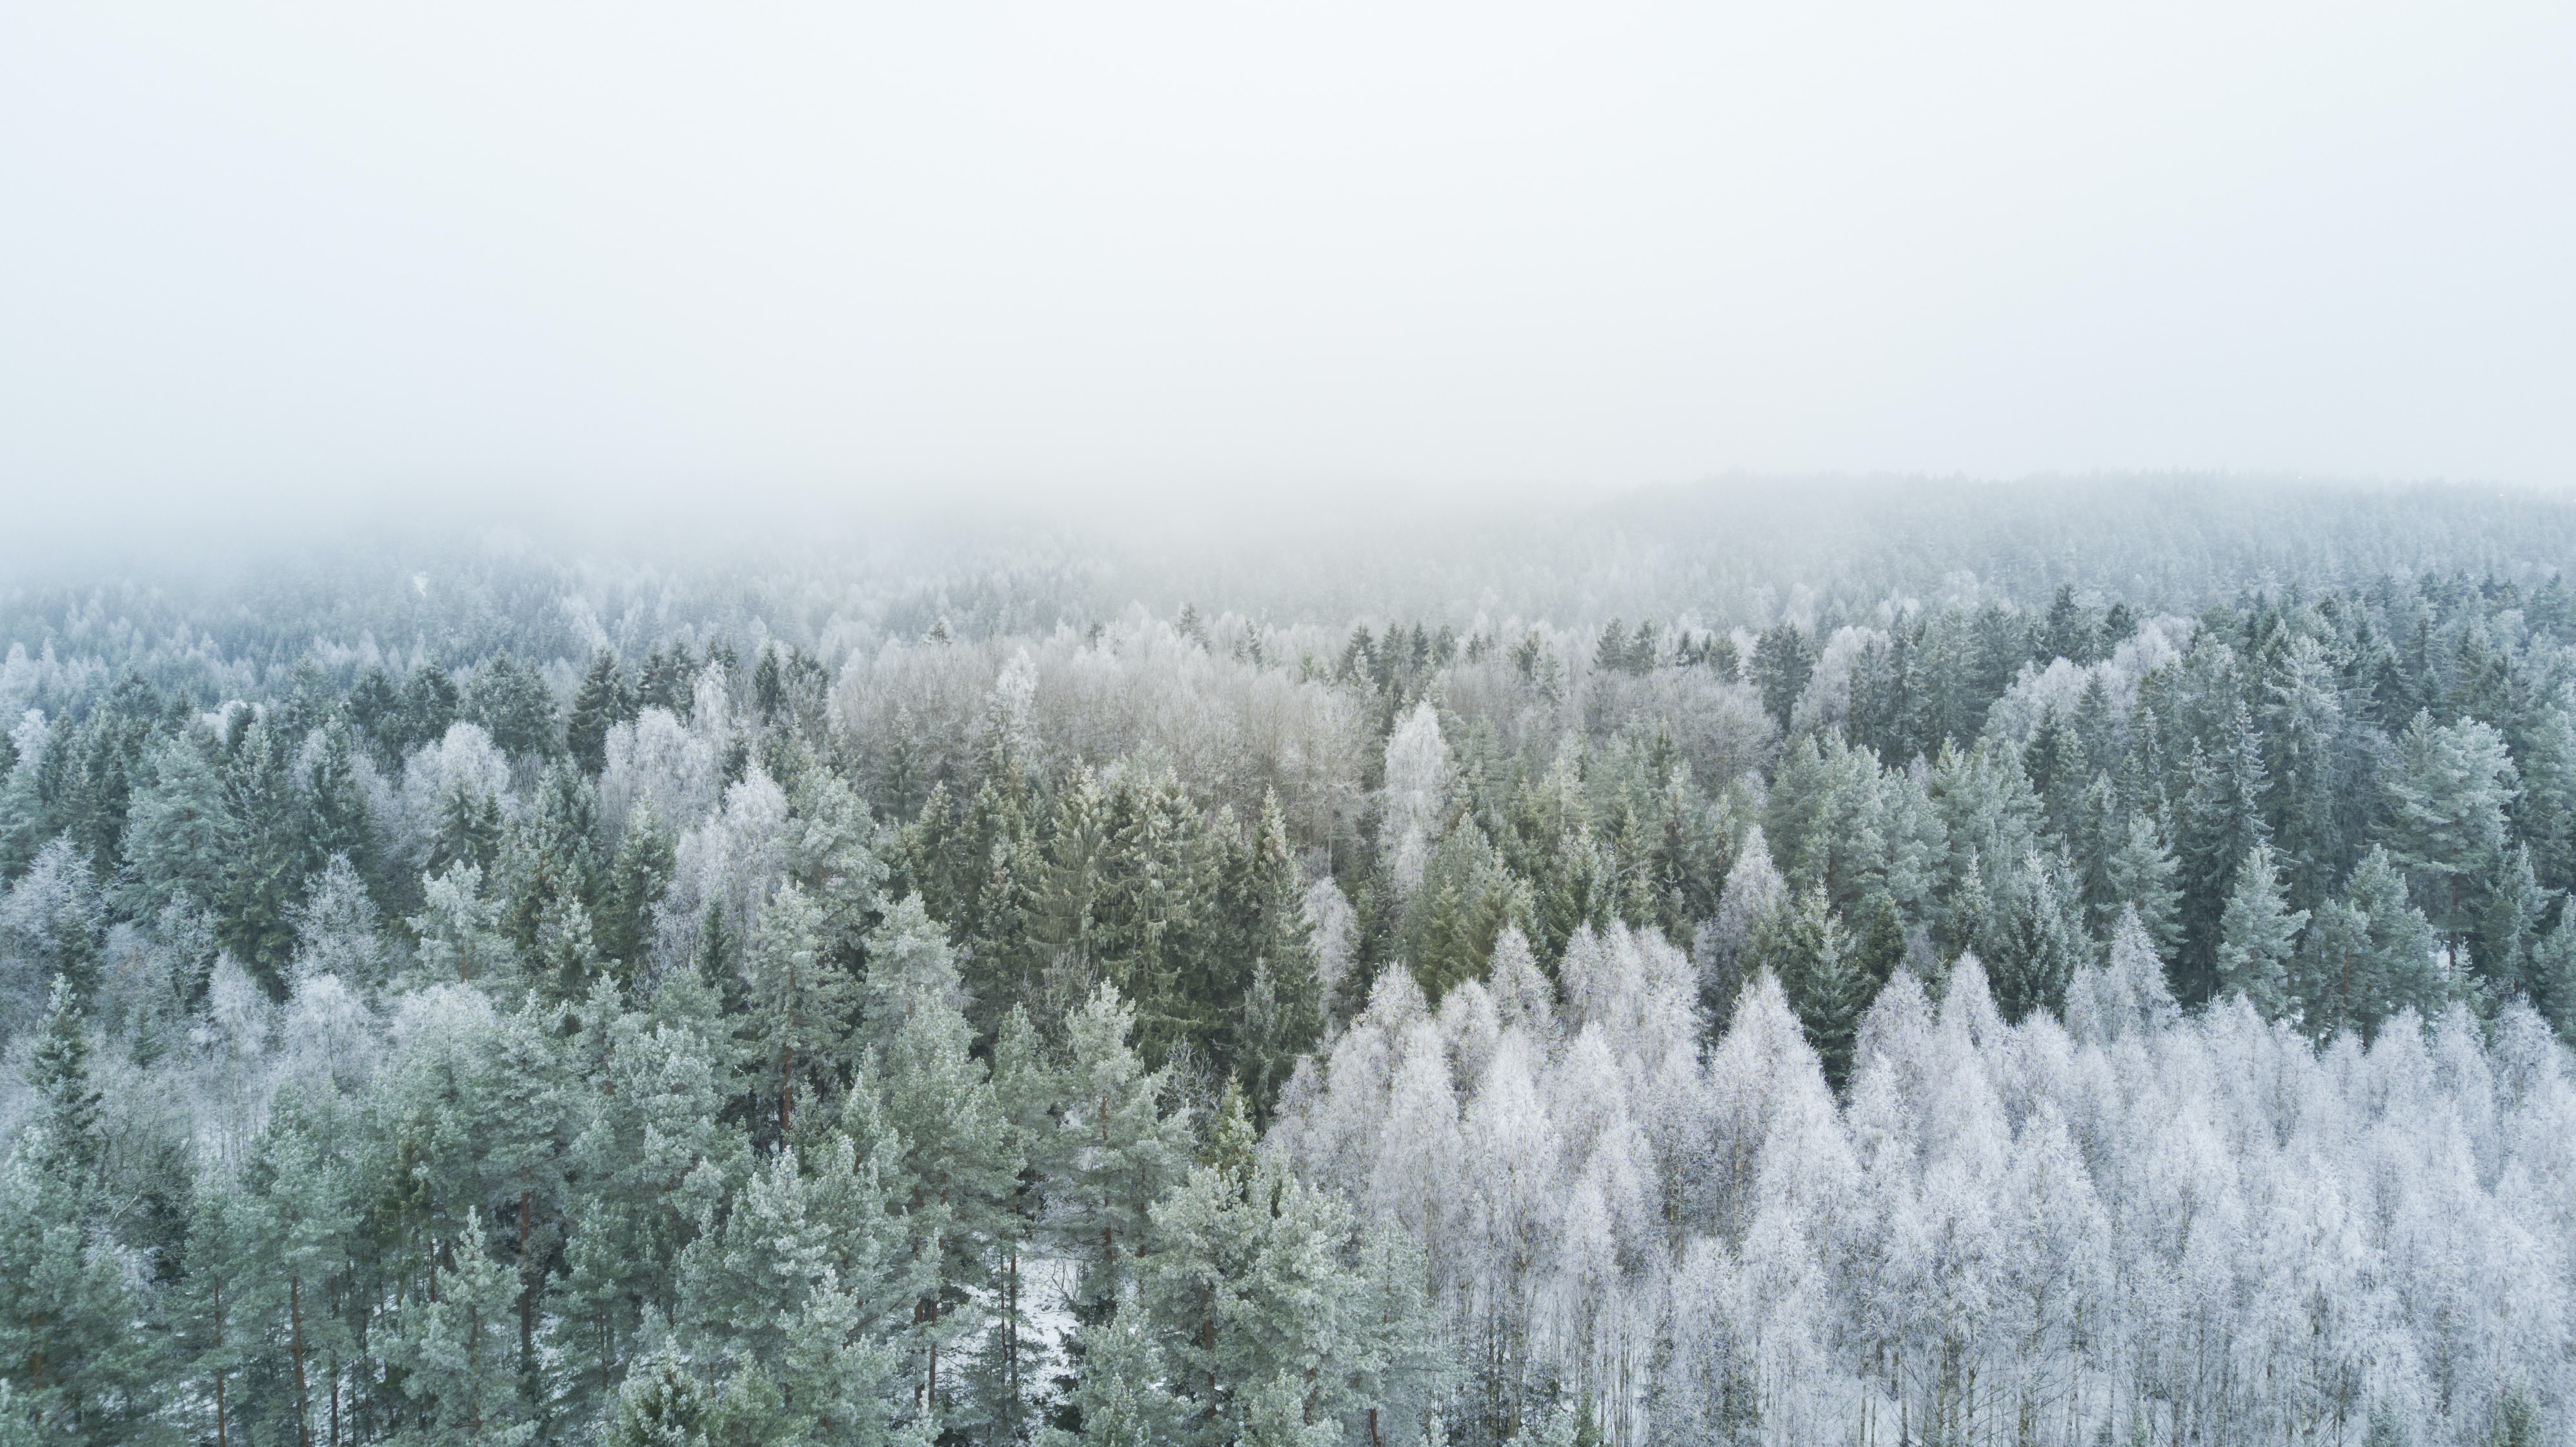 bird's eye view photography of pine trees during winter